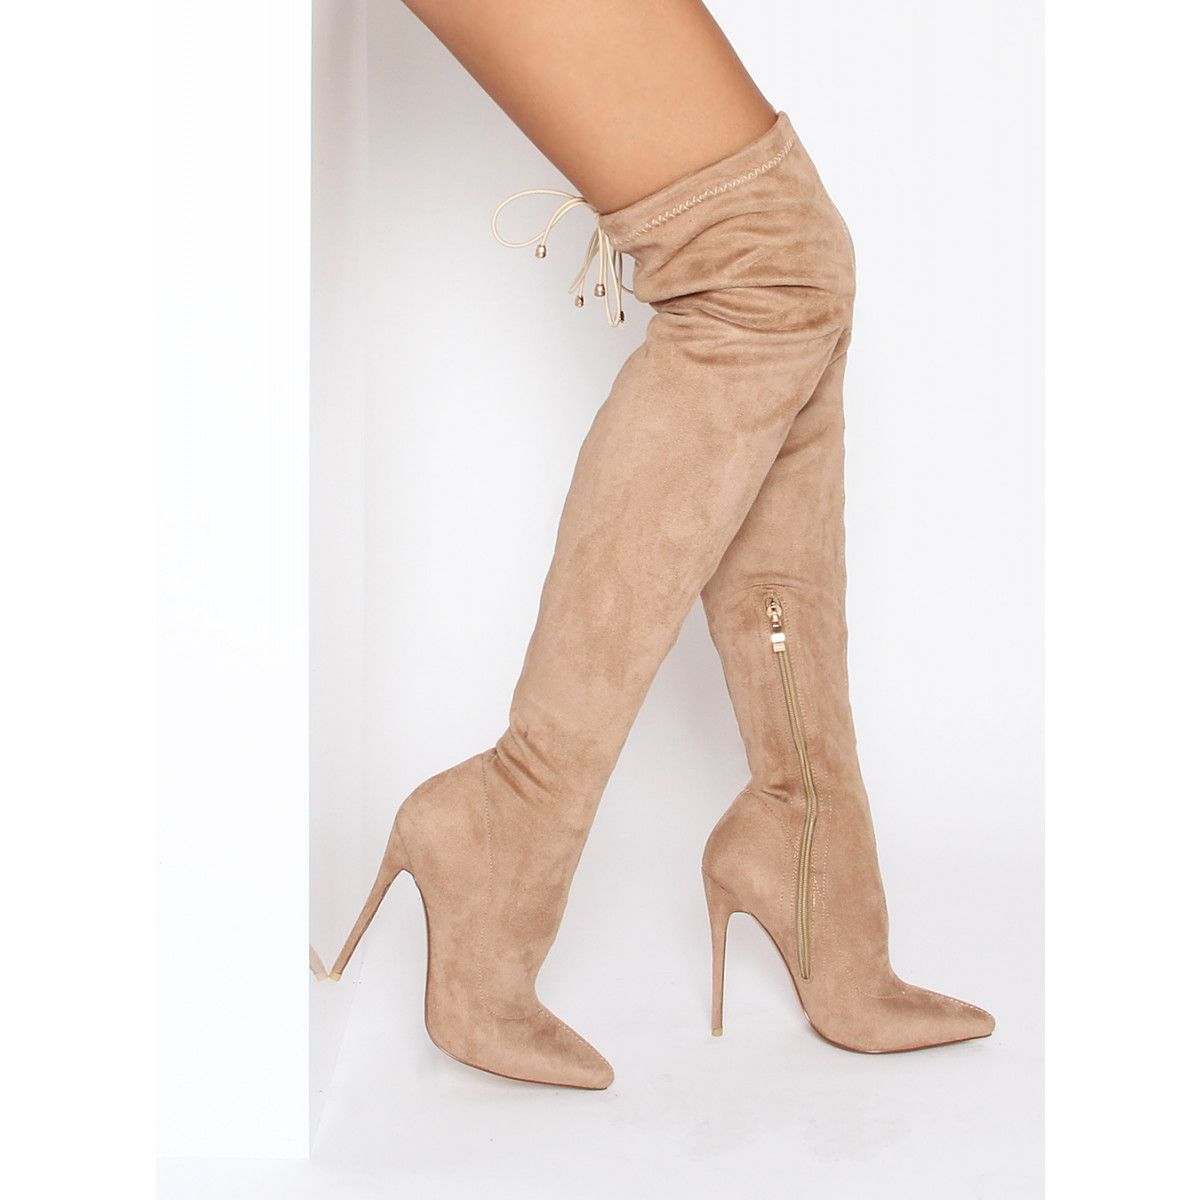 Cairo Nude Suede Pointed Toe Thigh High Boots : Simmi Shoes | Thứ ...